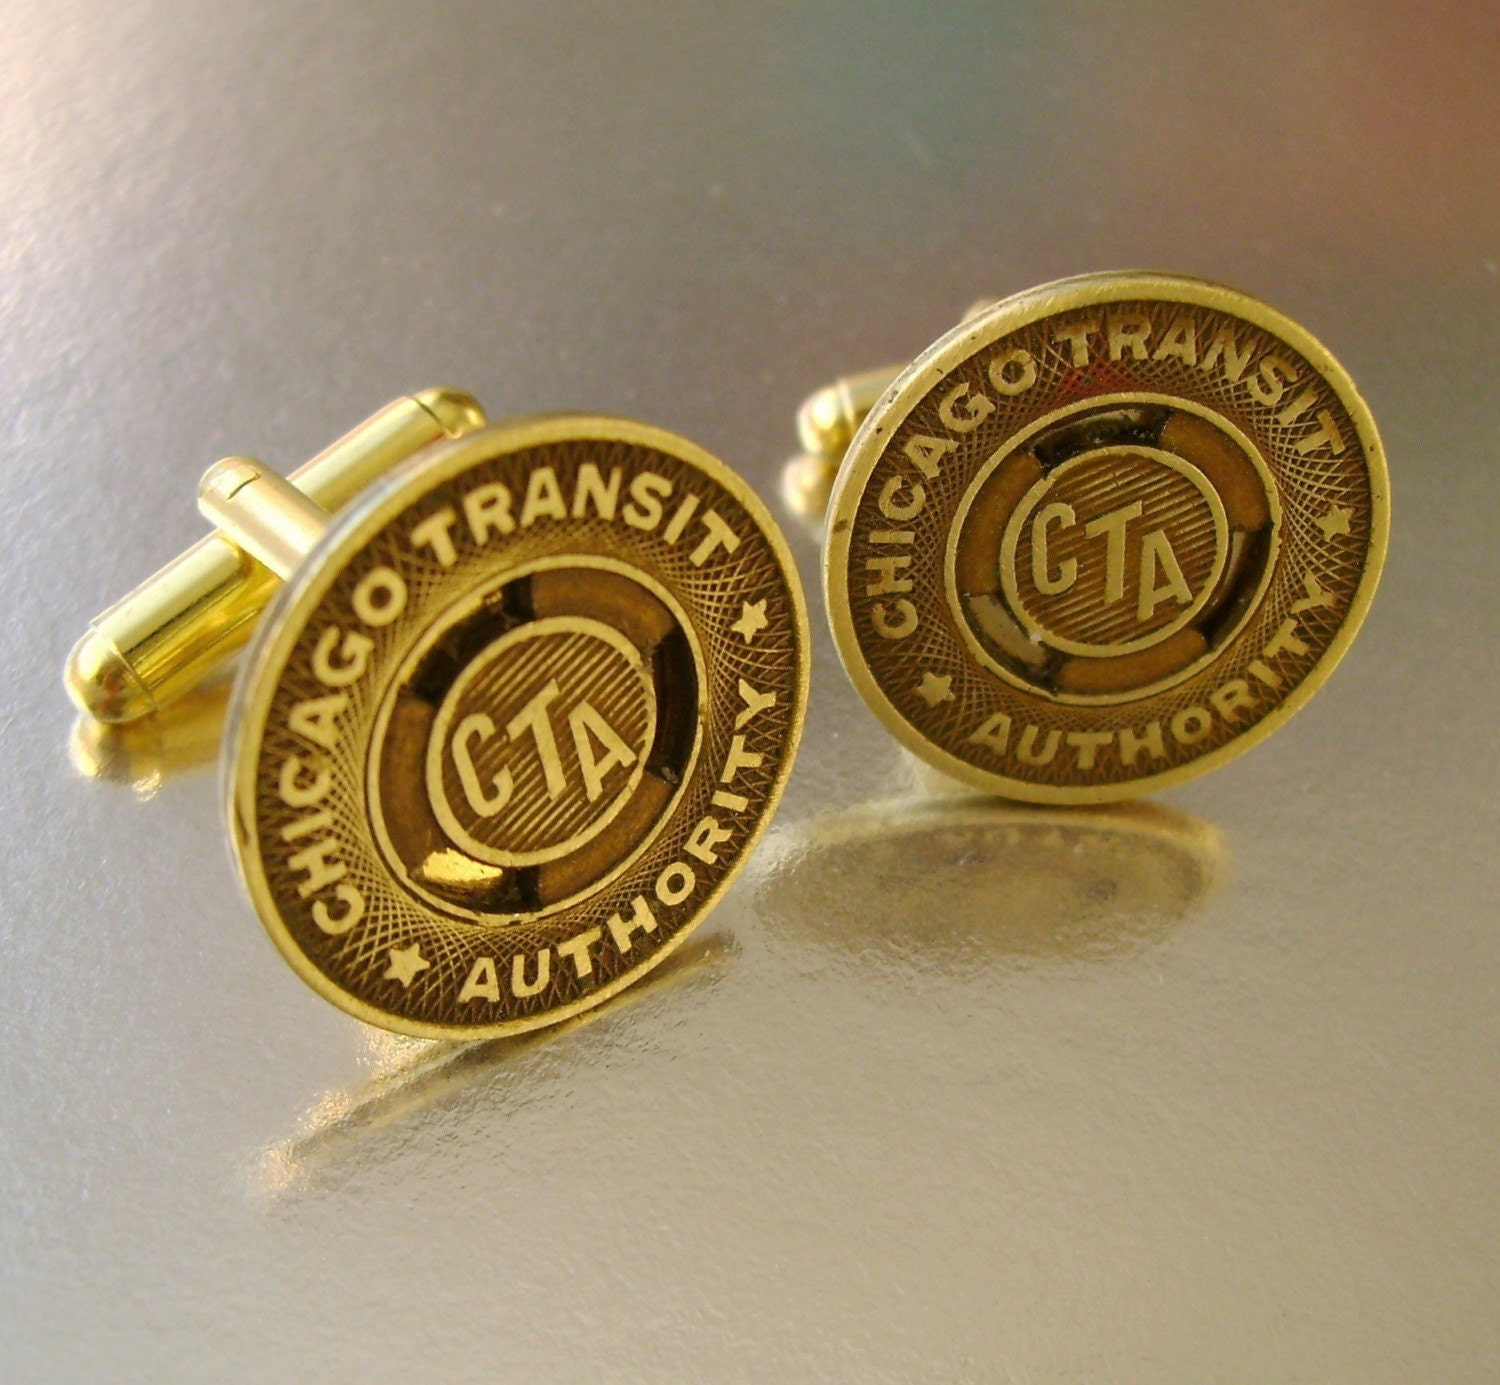 Chicago Transit Authority - Transit Subway Token Cufflinks, Man Gift, Groomsman Gift